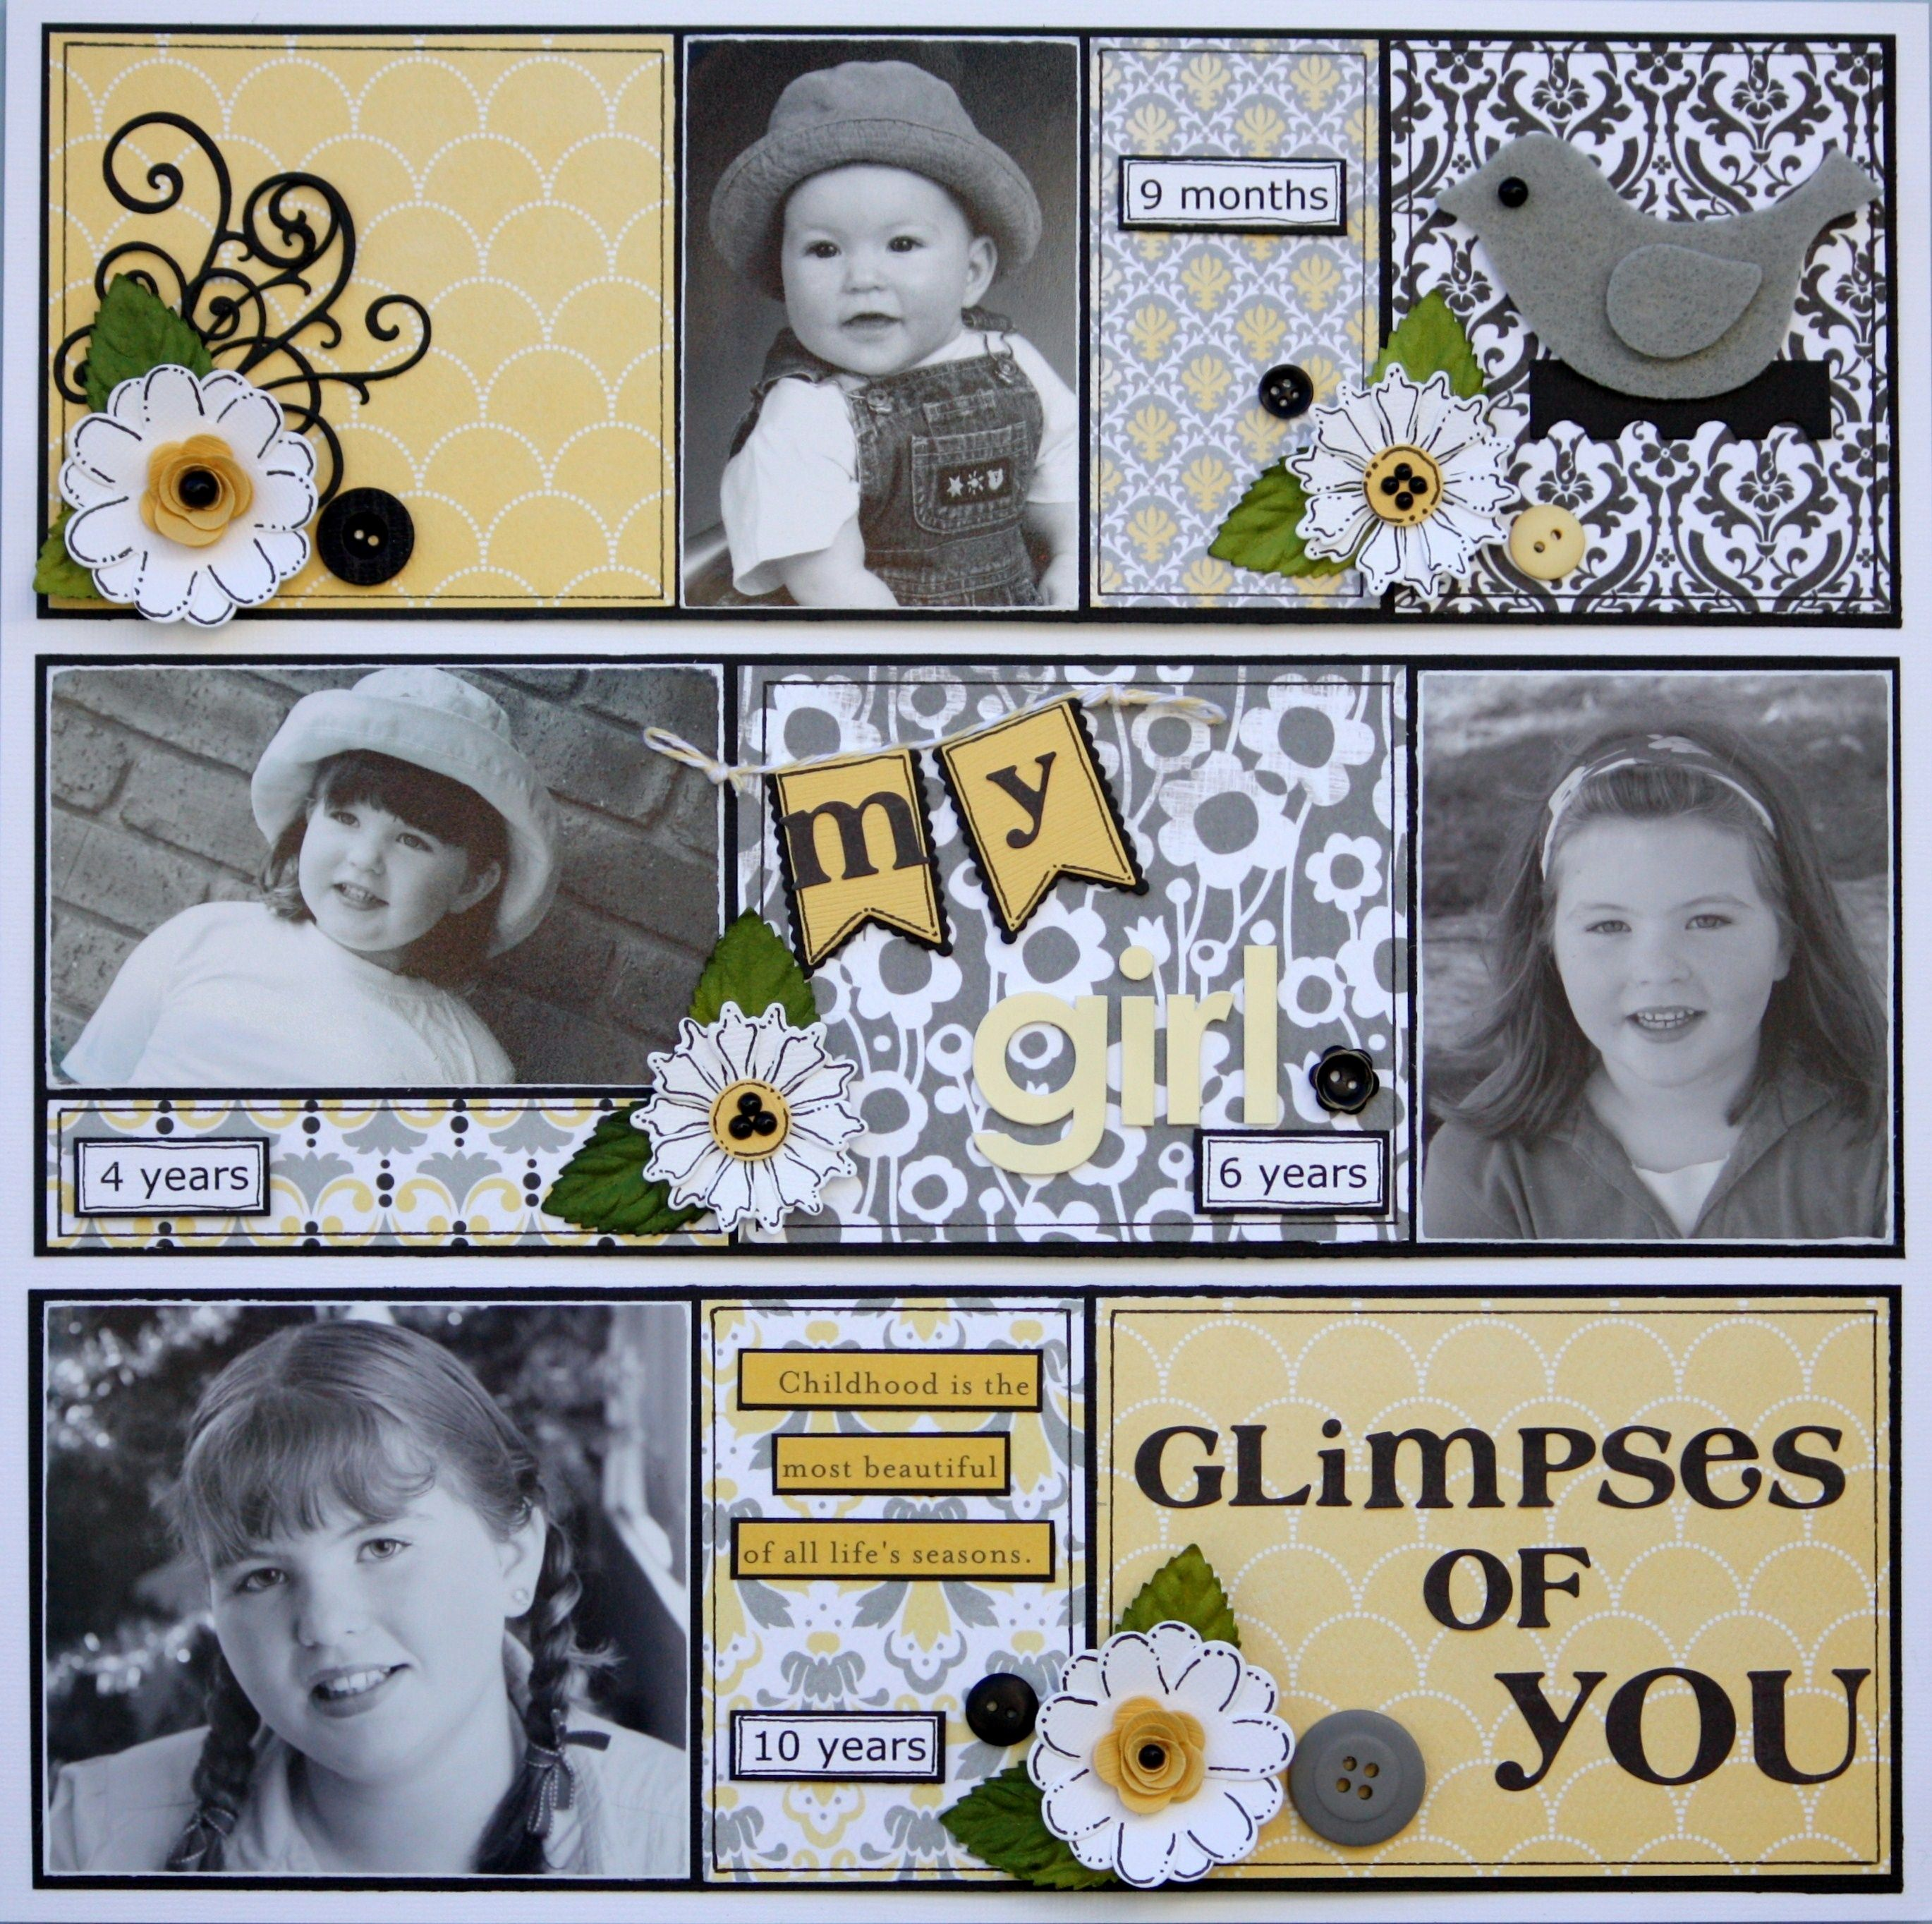 Scrapbook ideas many pictures - 17 Best Images About Scrapbooking On Pinterest Papercraft Paper And Paper Packs